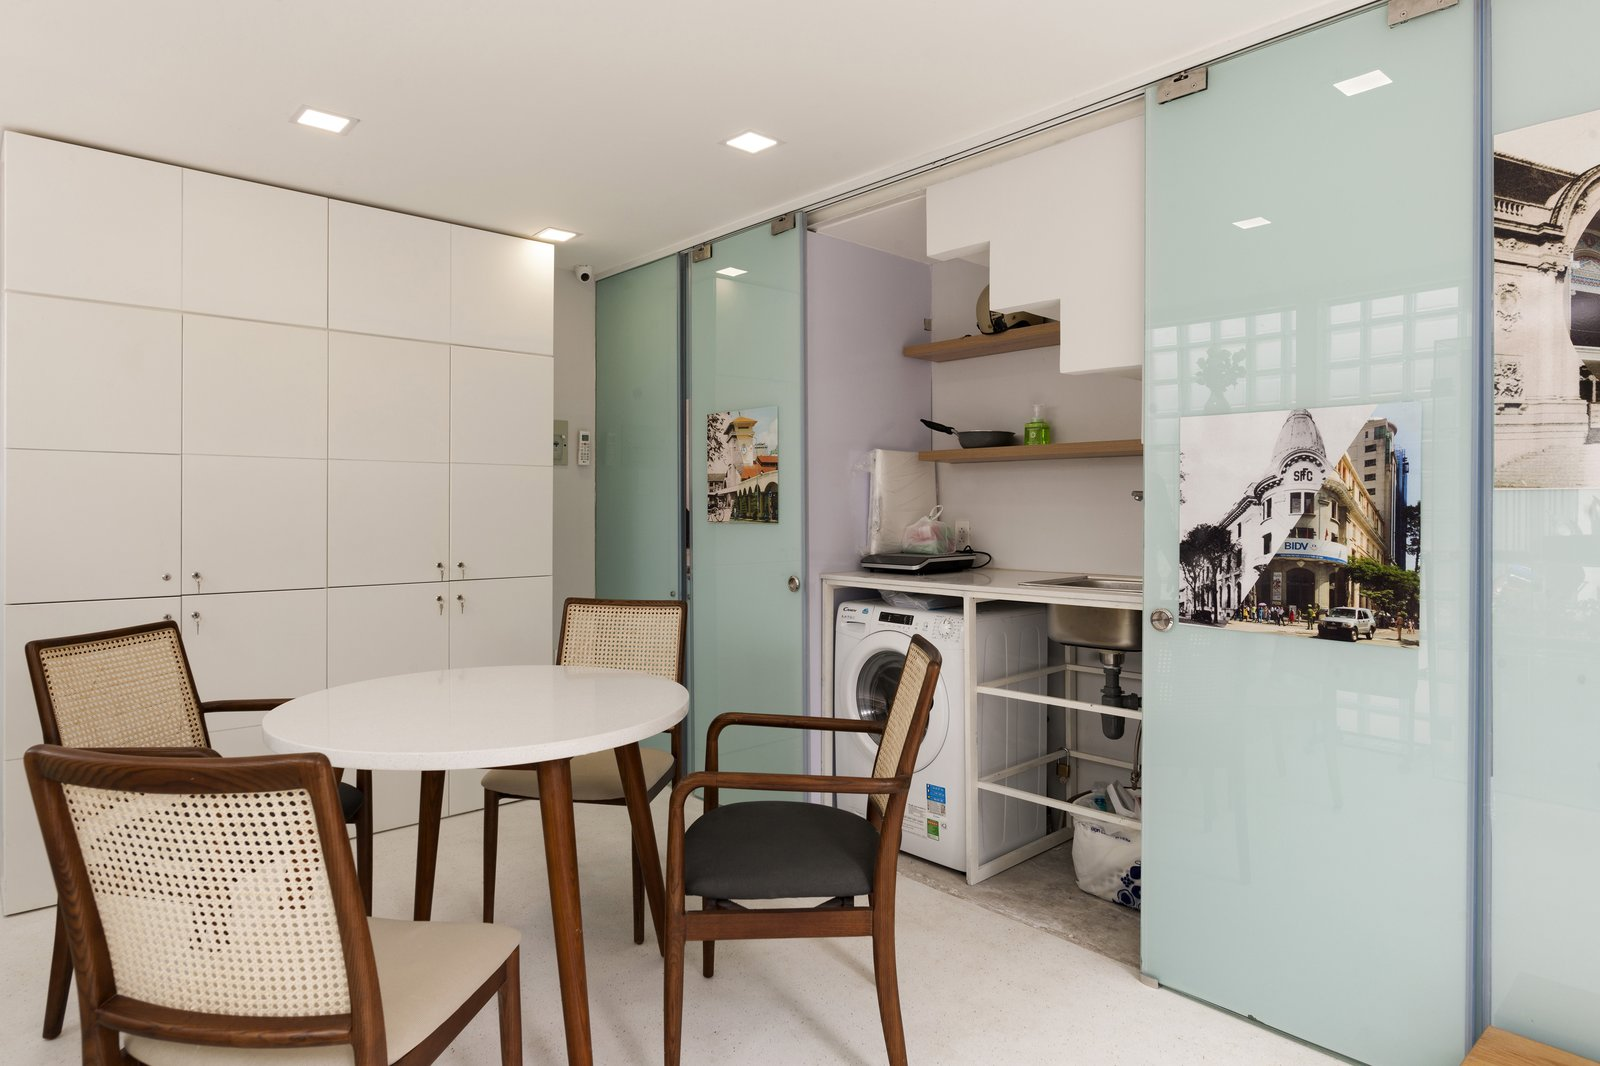 Dining Room, Chair, Recessed Lighting, and Table The kitchen, dining space and laundry area are also located on the ground level.  Photo 5 of 12 in This Vietnamese Micro Home Is as Practical as It Is Radiant